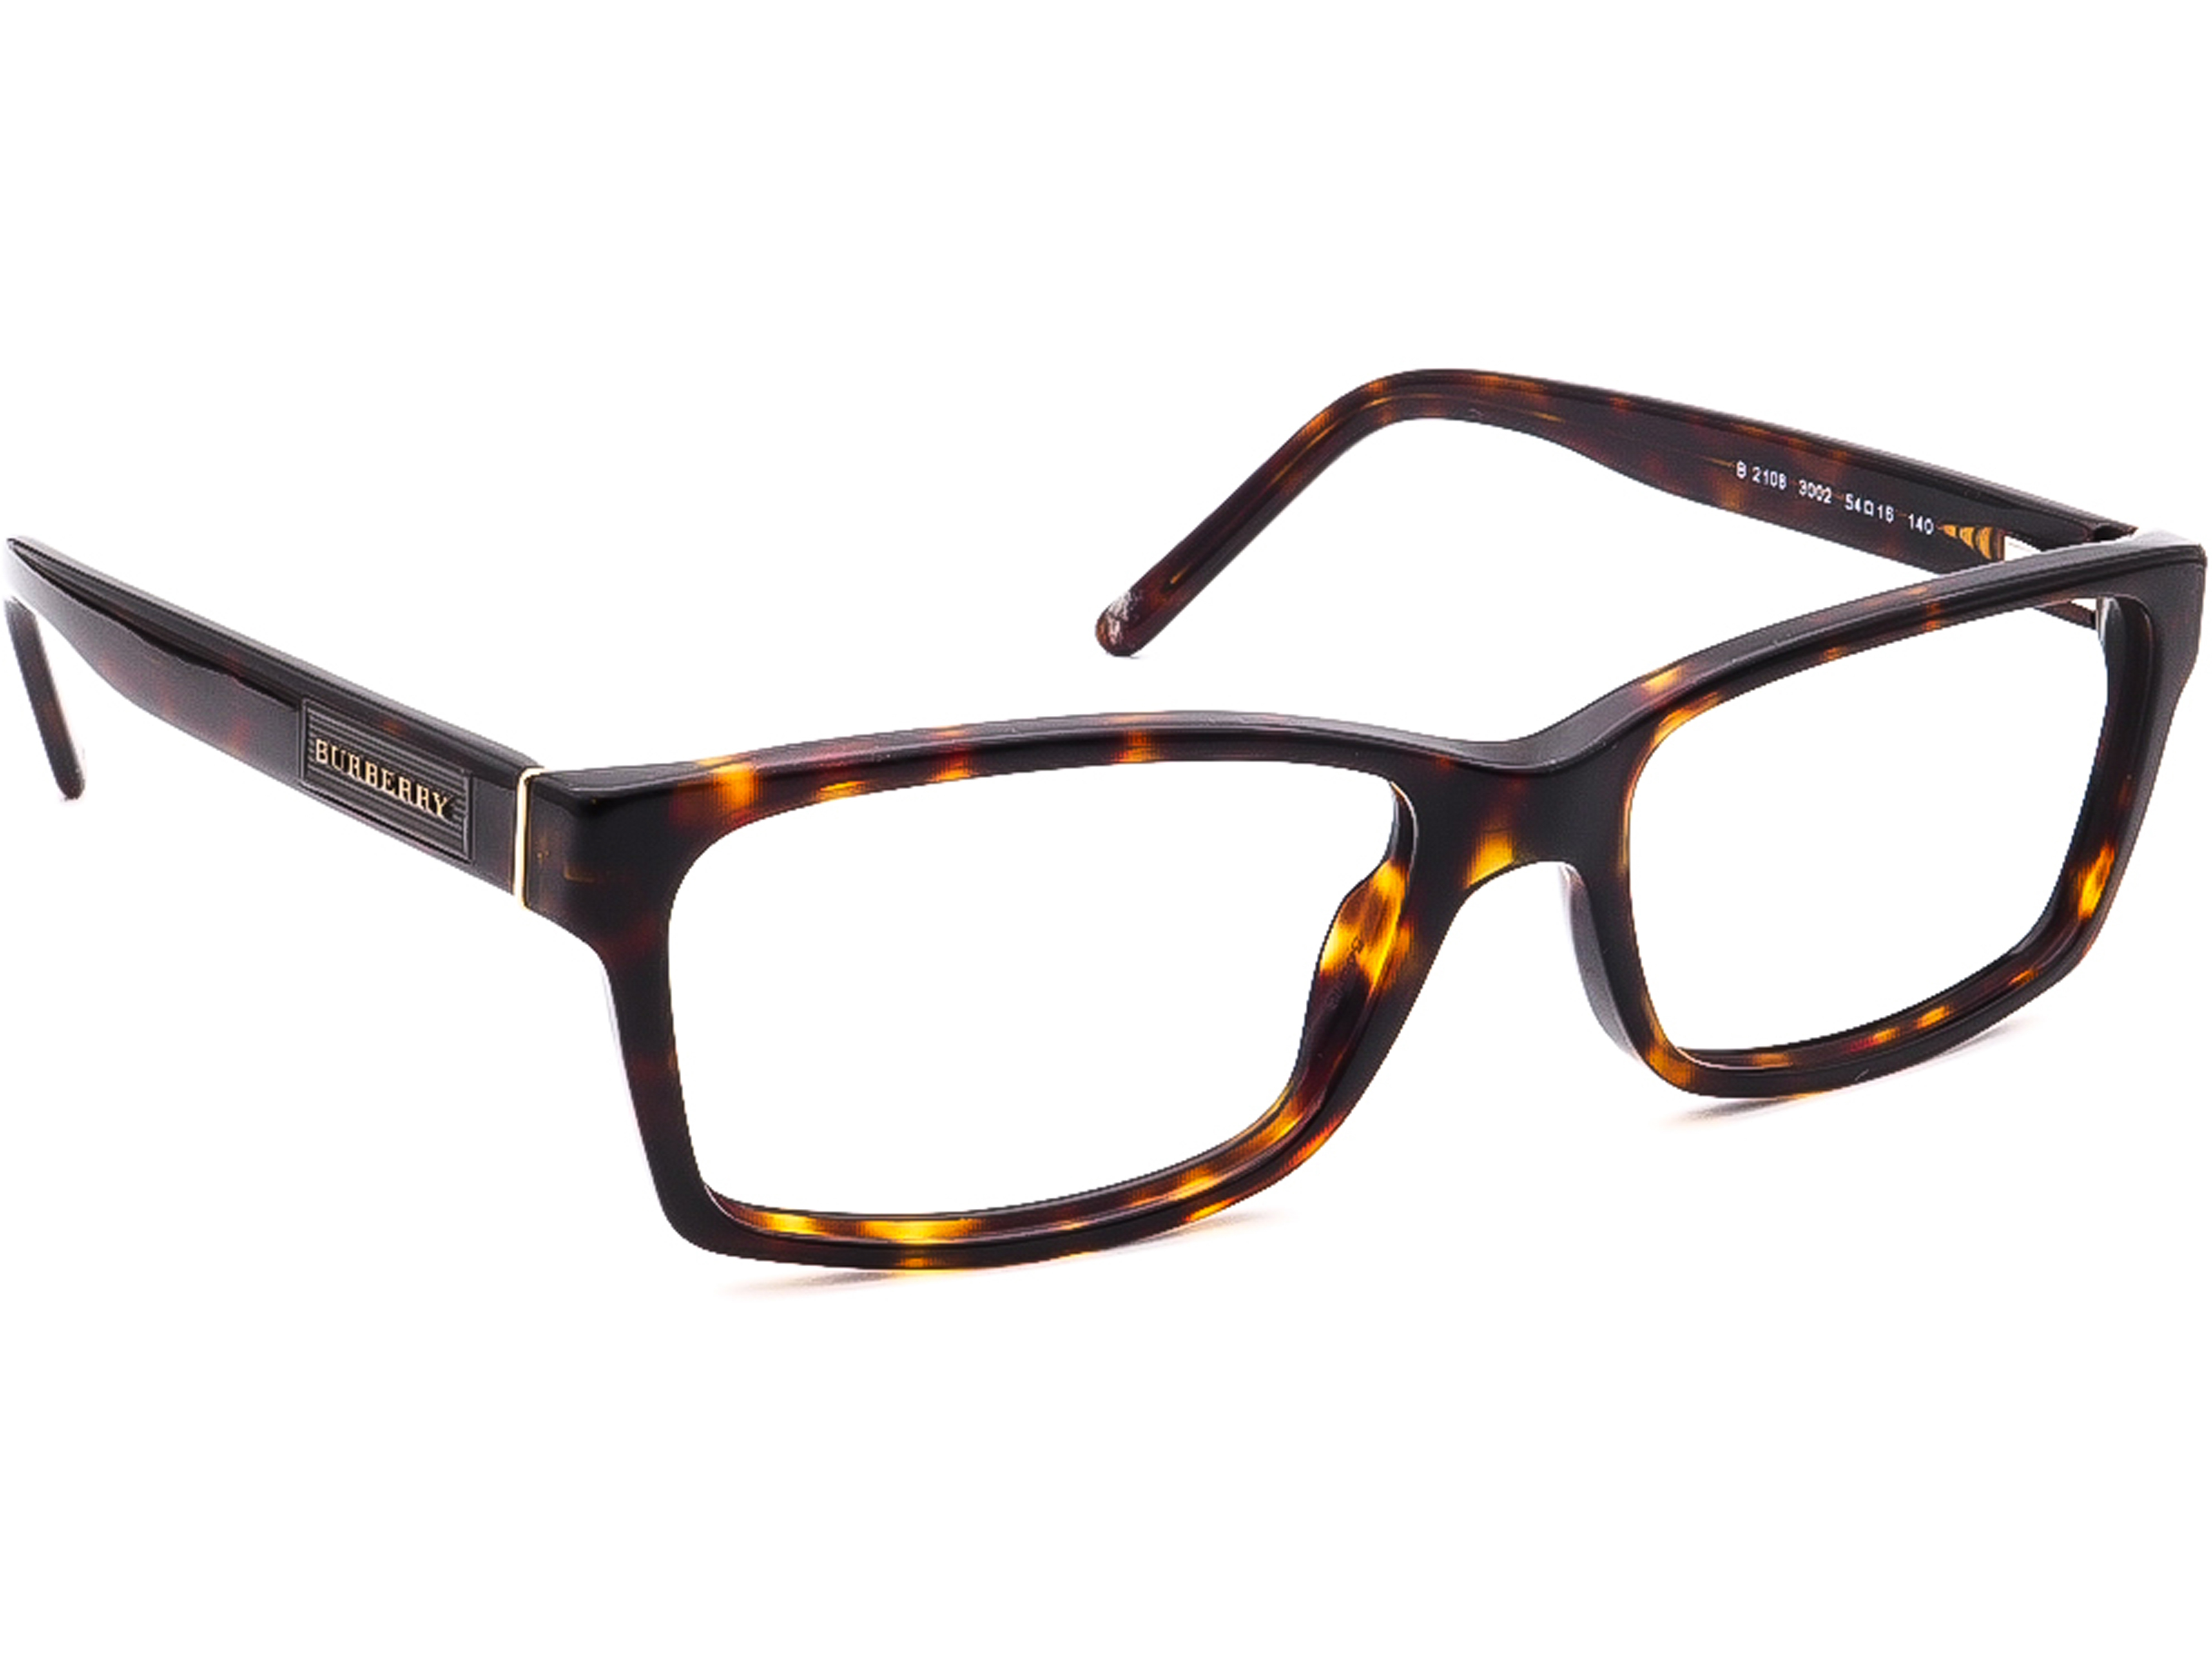 Burberry B 2108 3002 Eyeglasses